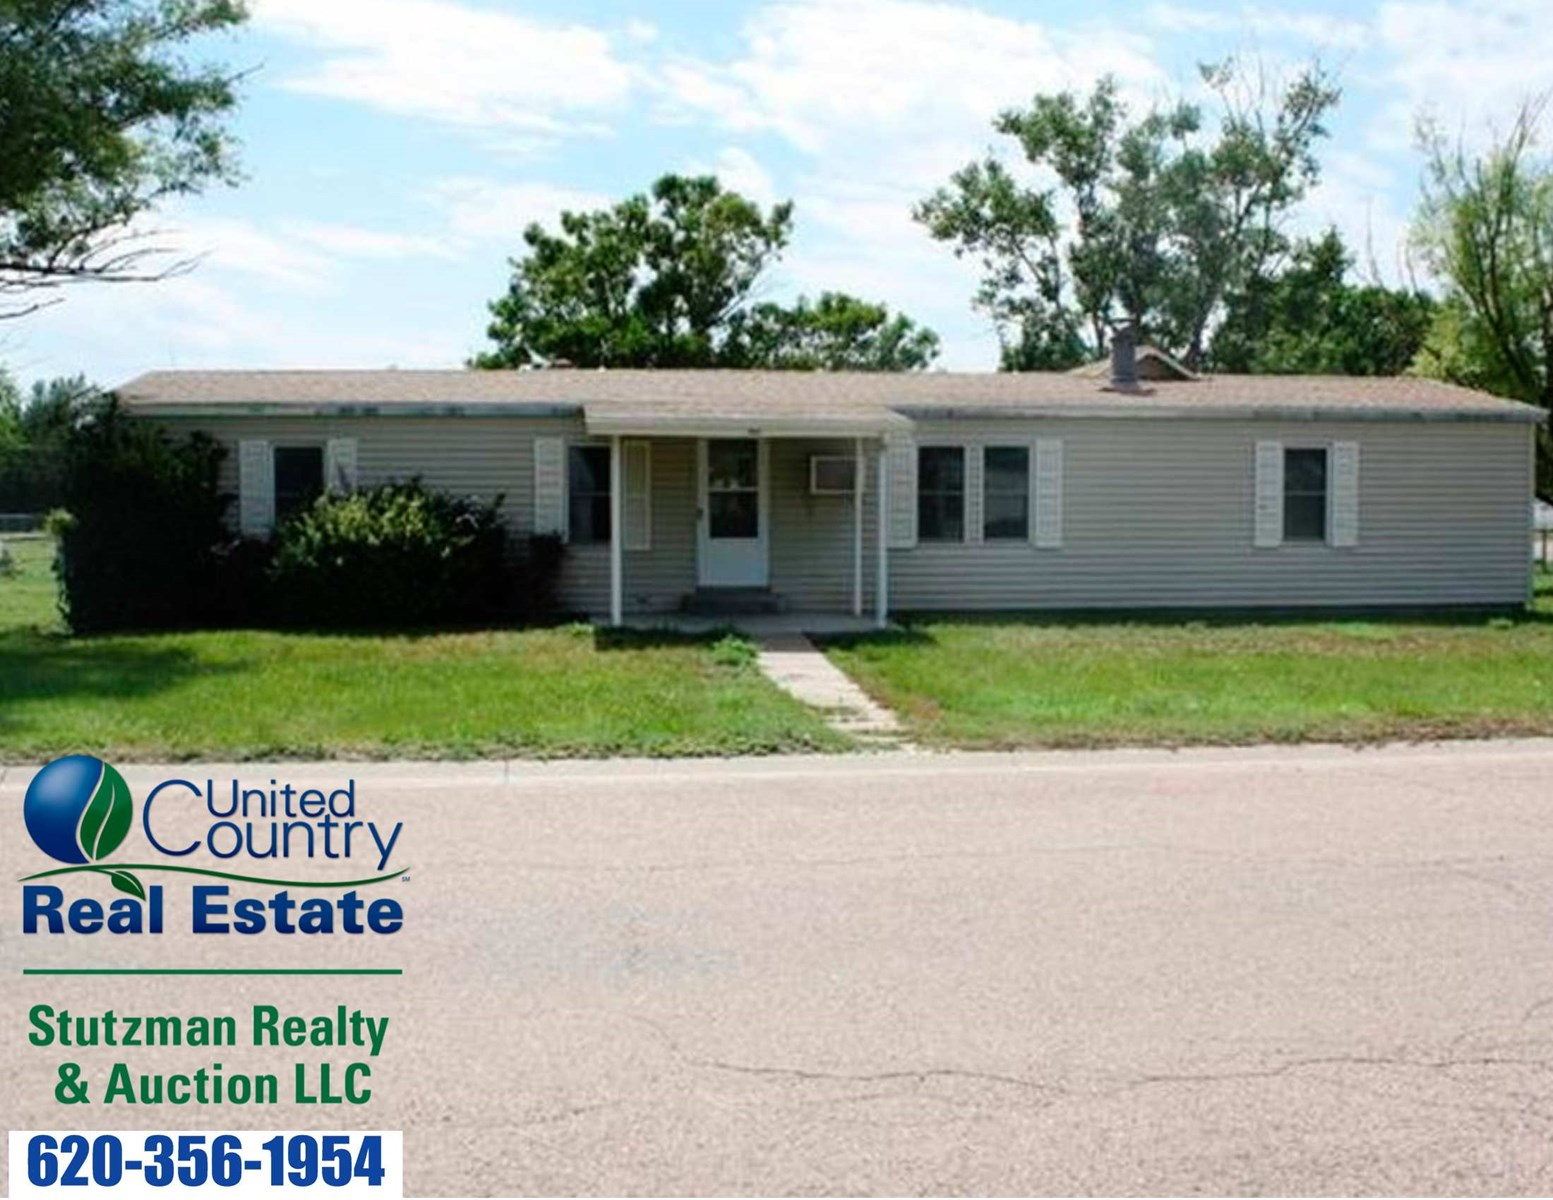 HOME FOR SALE IN HUGOTON, KANSAS